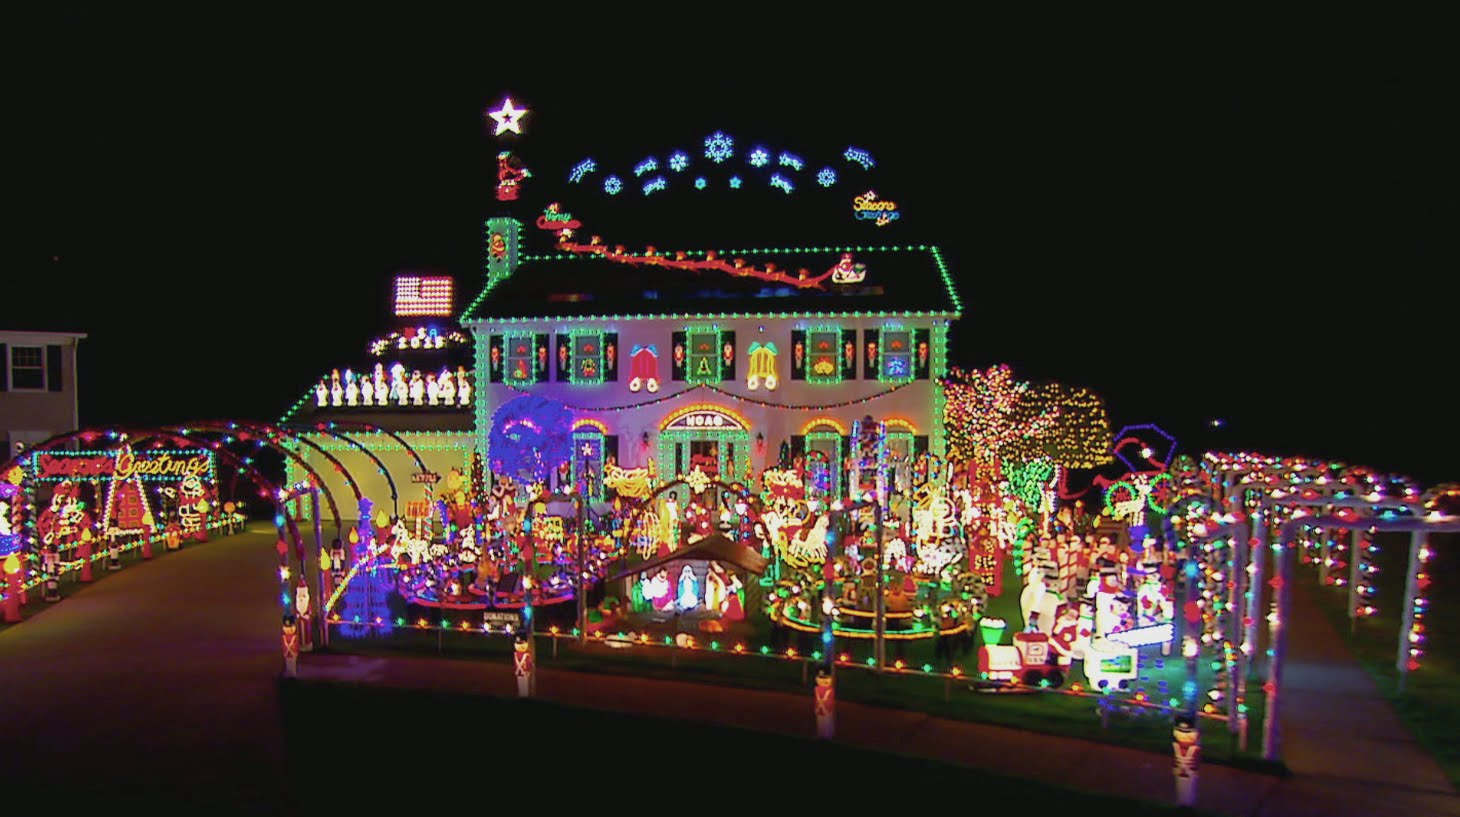 The Great Christmas Light Fight 2019.The Great Christmas Light Fight Renewed For Season 7 The